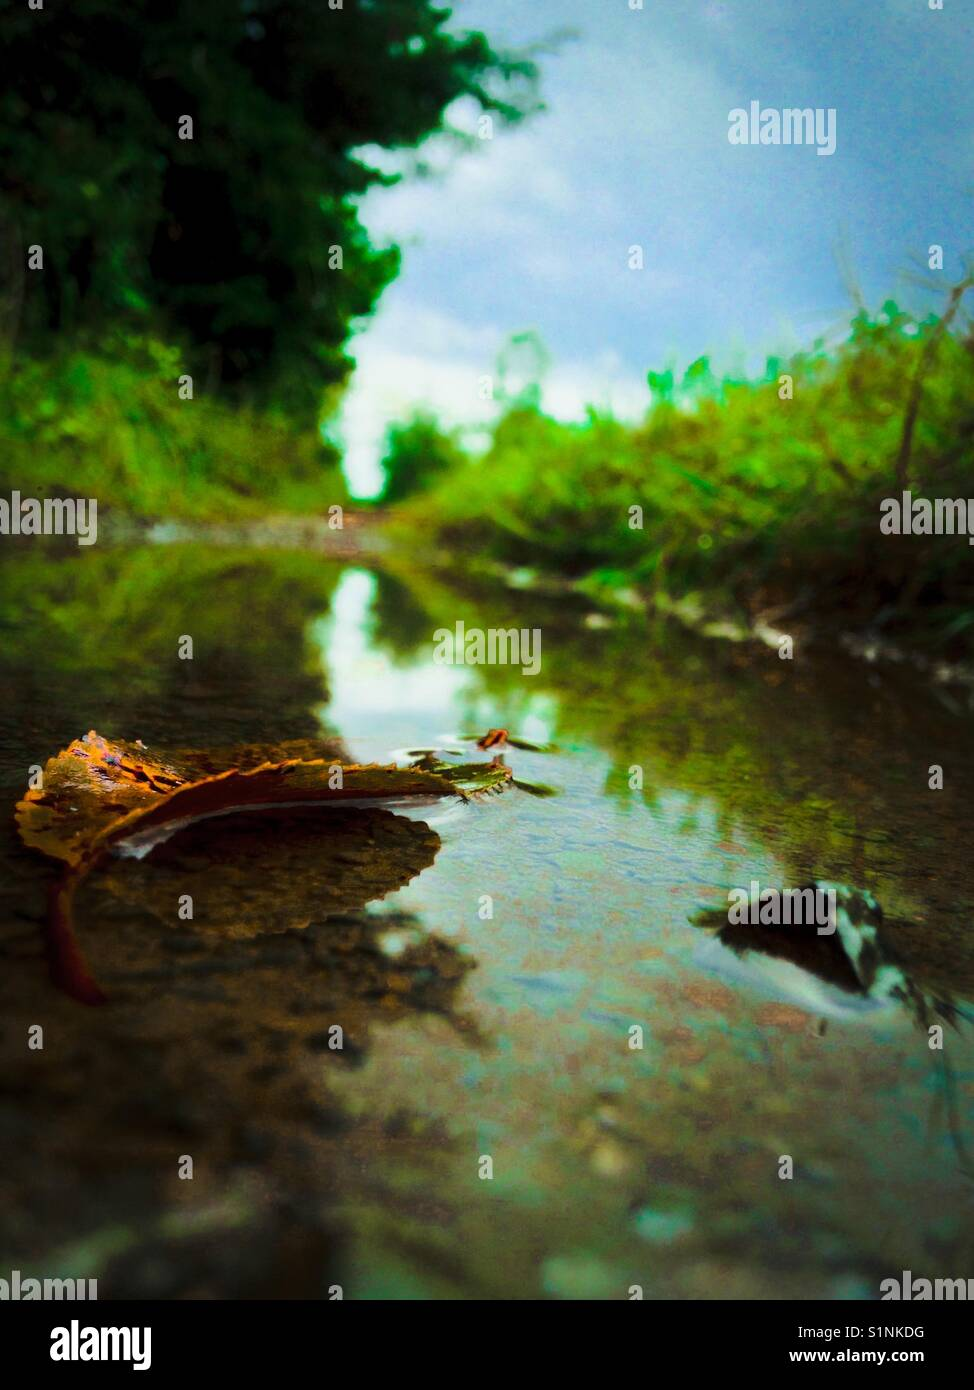 Blue-green photo of water puddle in lane after rain storm Stock Photo